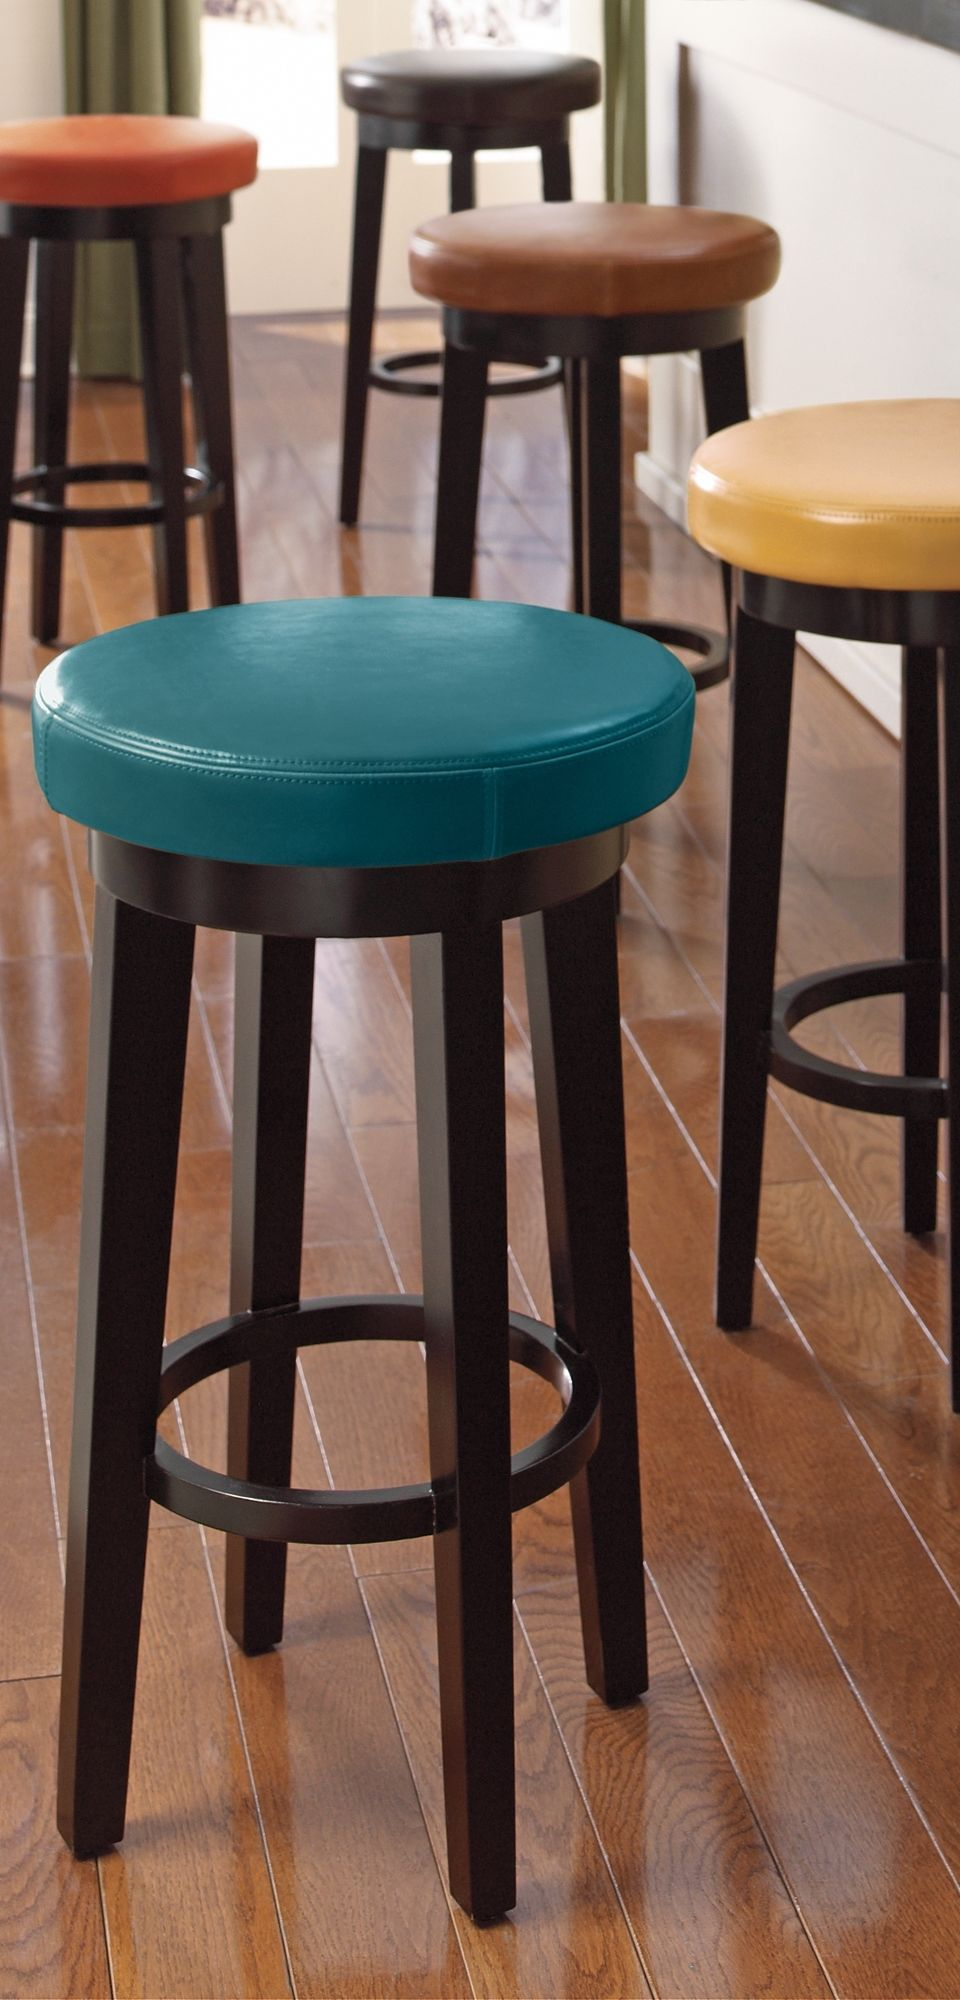 Dublin Leather Swivel Bar Stool Bar Stools Swivel Bar Stools